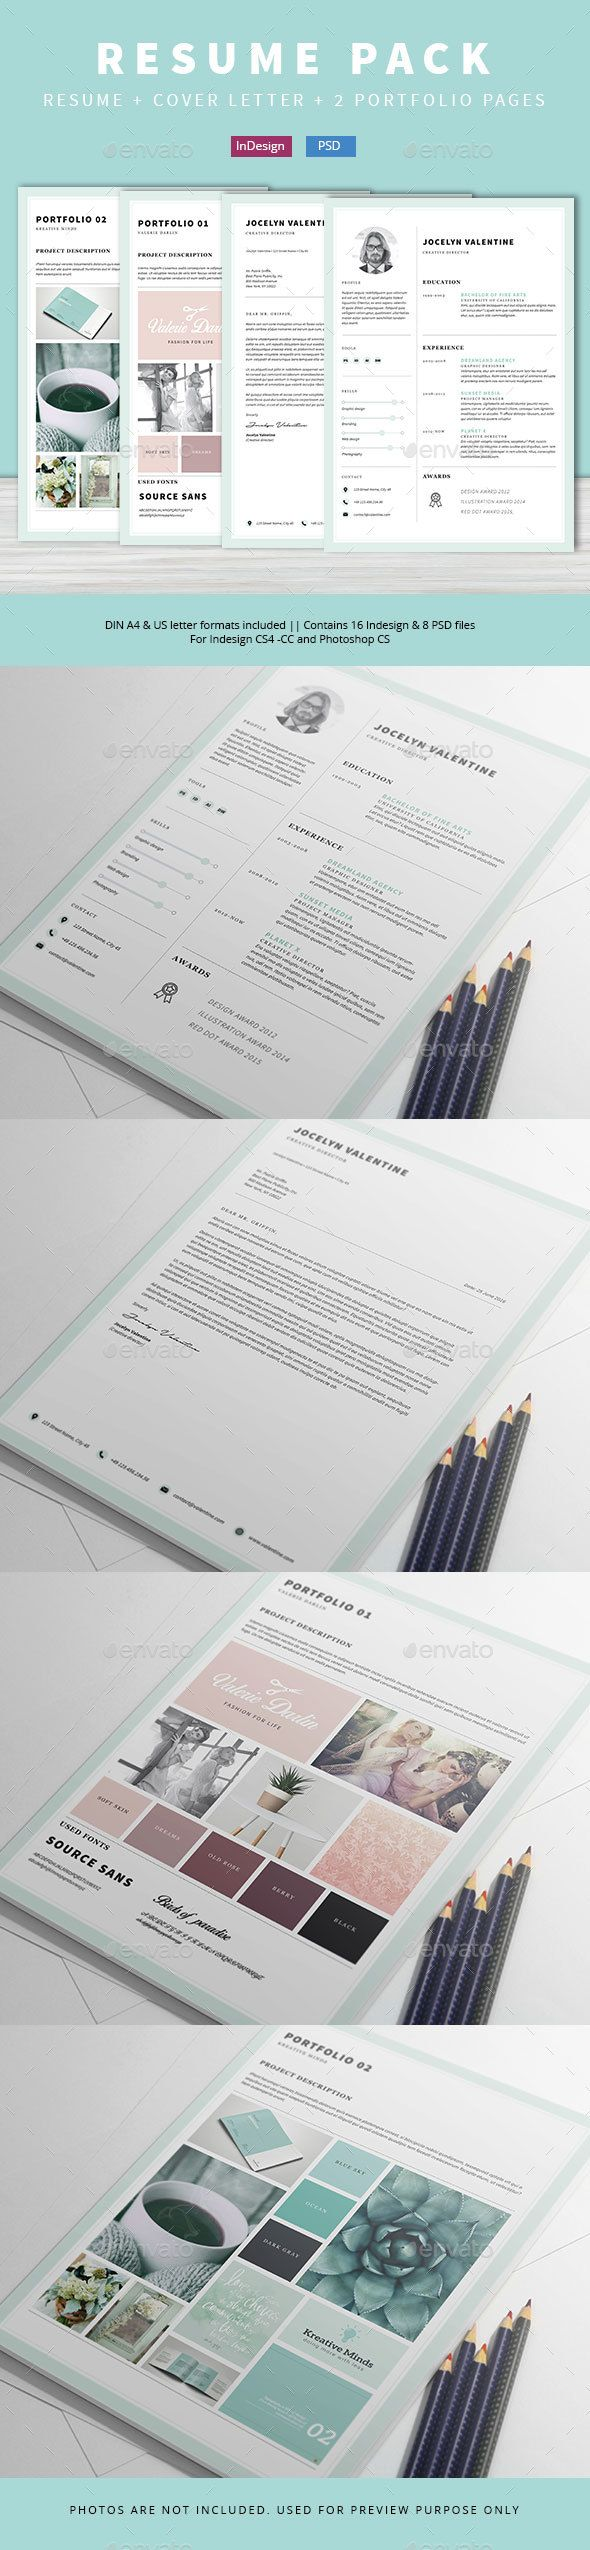 Best Resume Images On   Resume Curriculum And Design